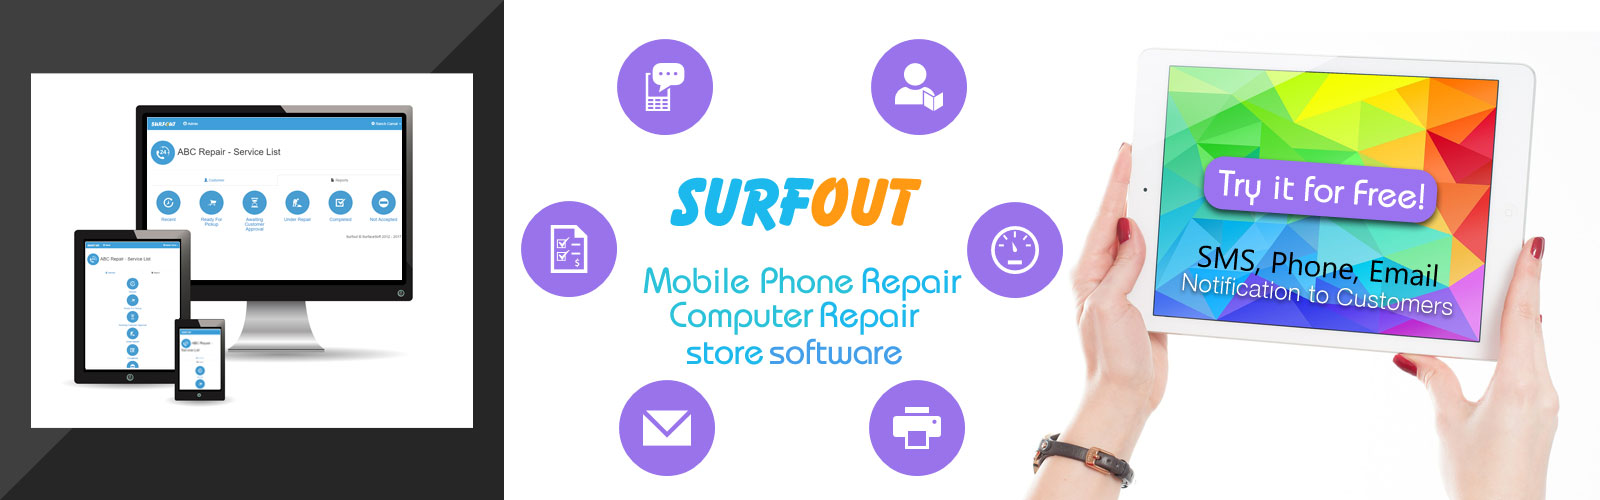 https://surfacesoft.com/wp-content/uploads/2017/03/RepairshopBanner.jpg